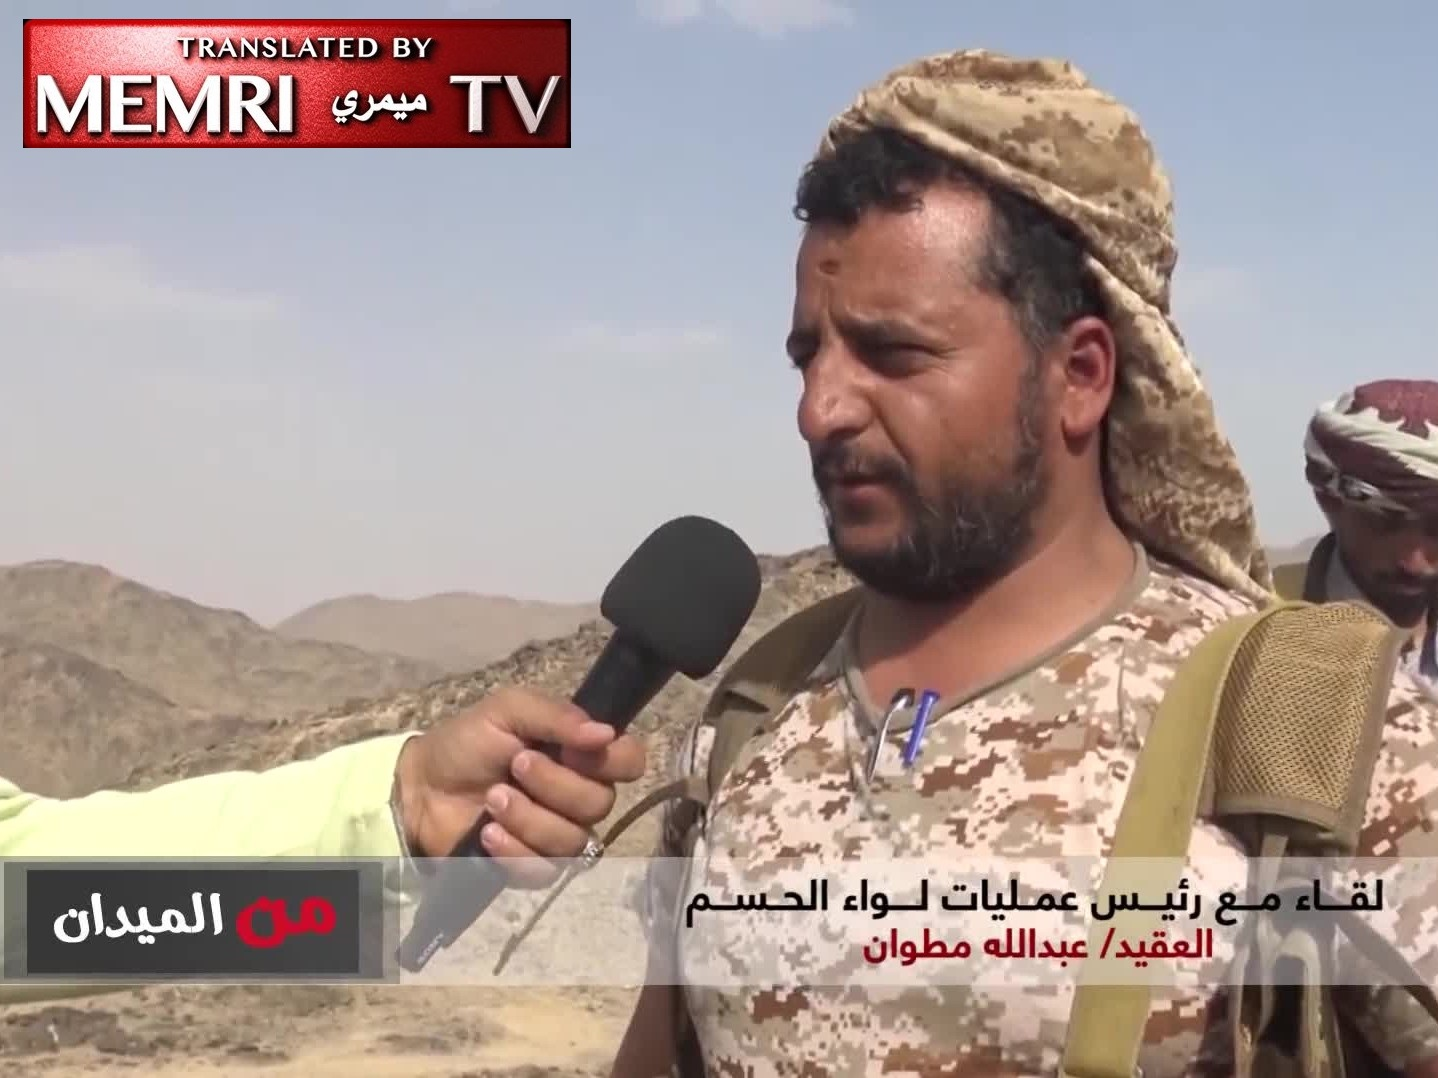 Yemeni Army Officer in Message to Houthis: You Are Our Brothers, But If You Try to Stop Us from Entering Sana'a and Sa'dah, You Shall Find Death